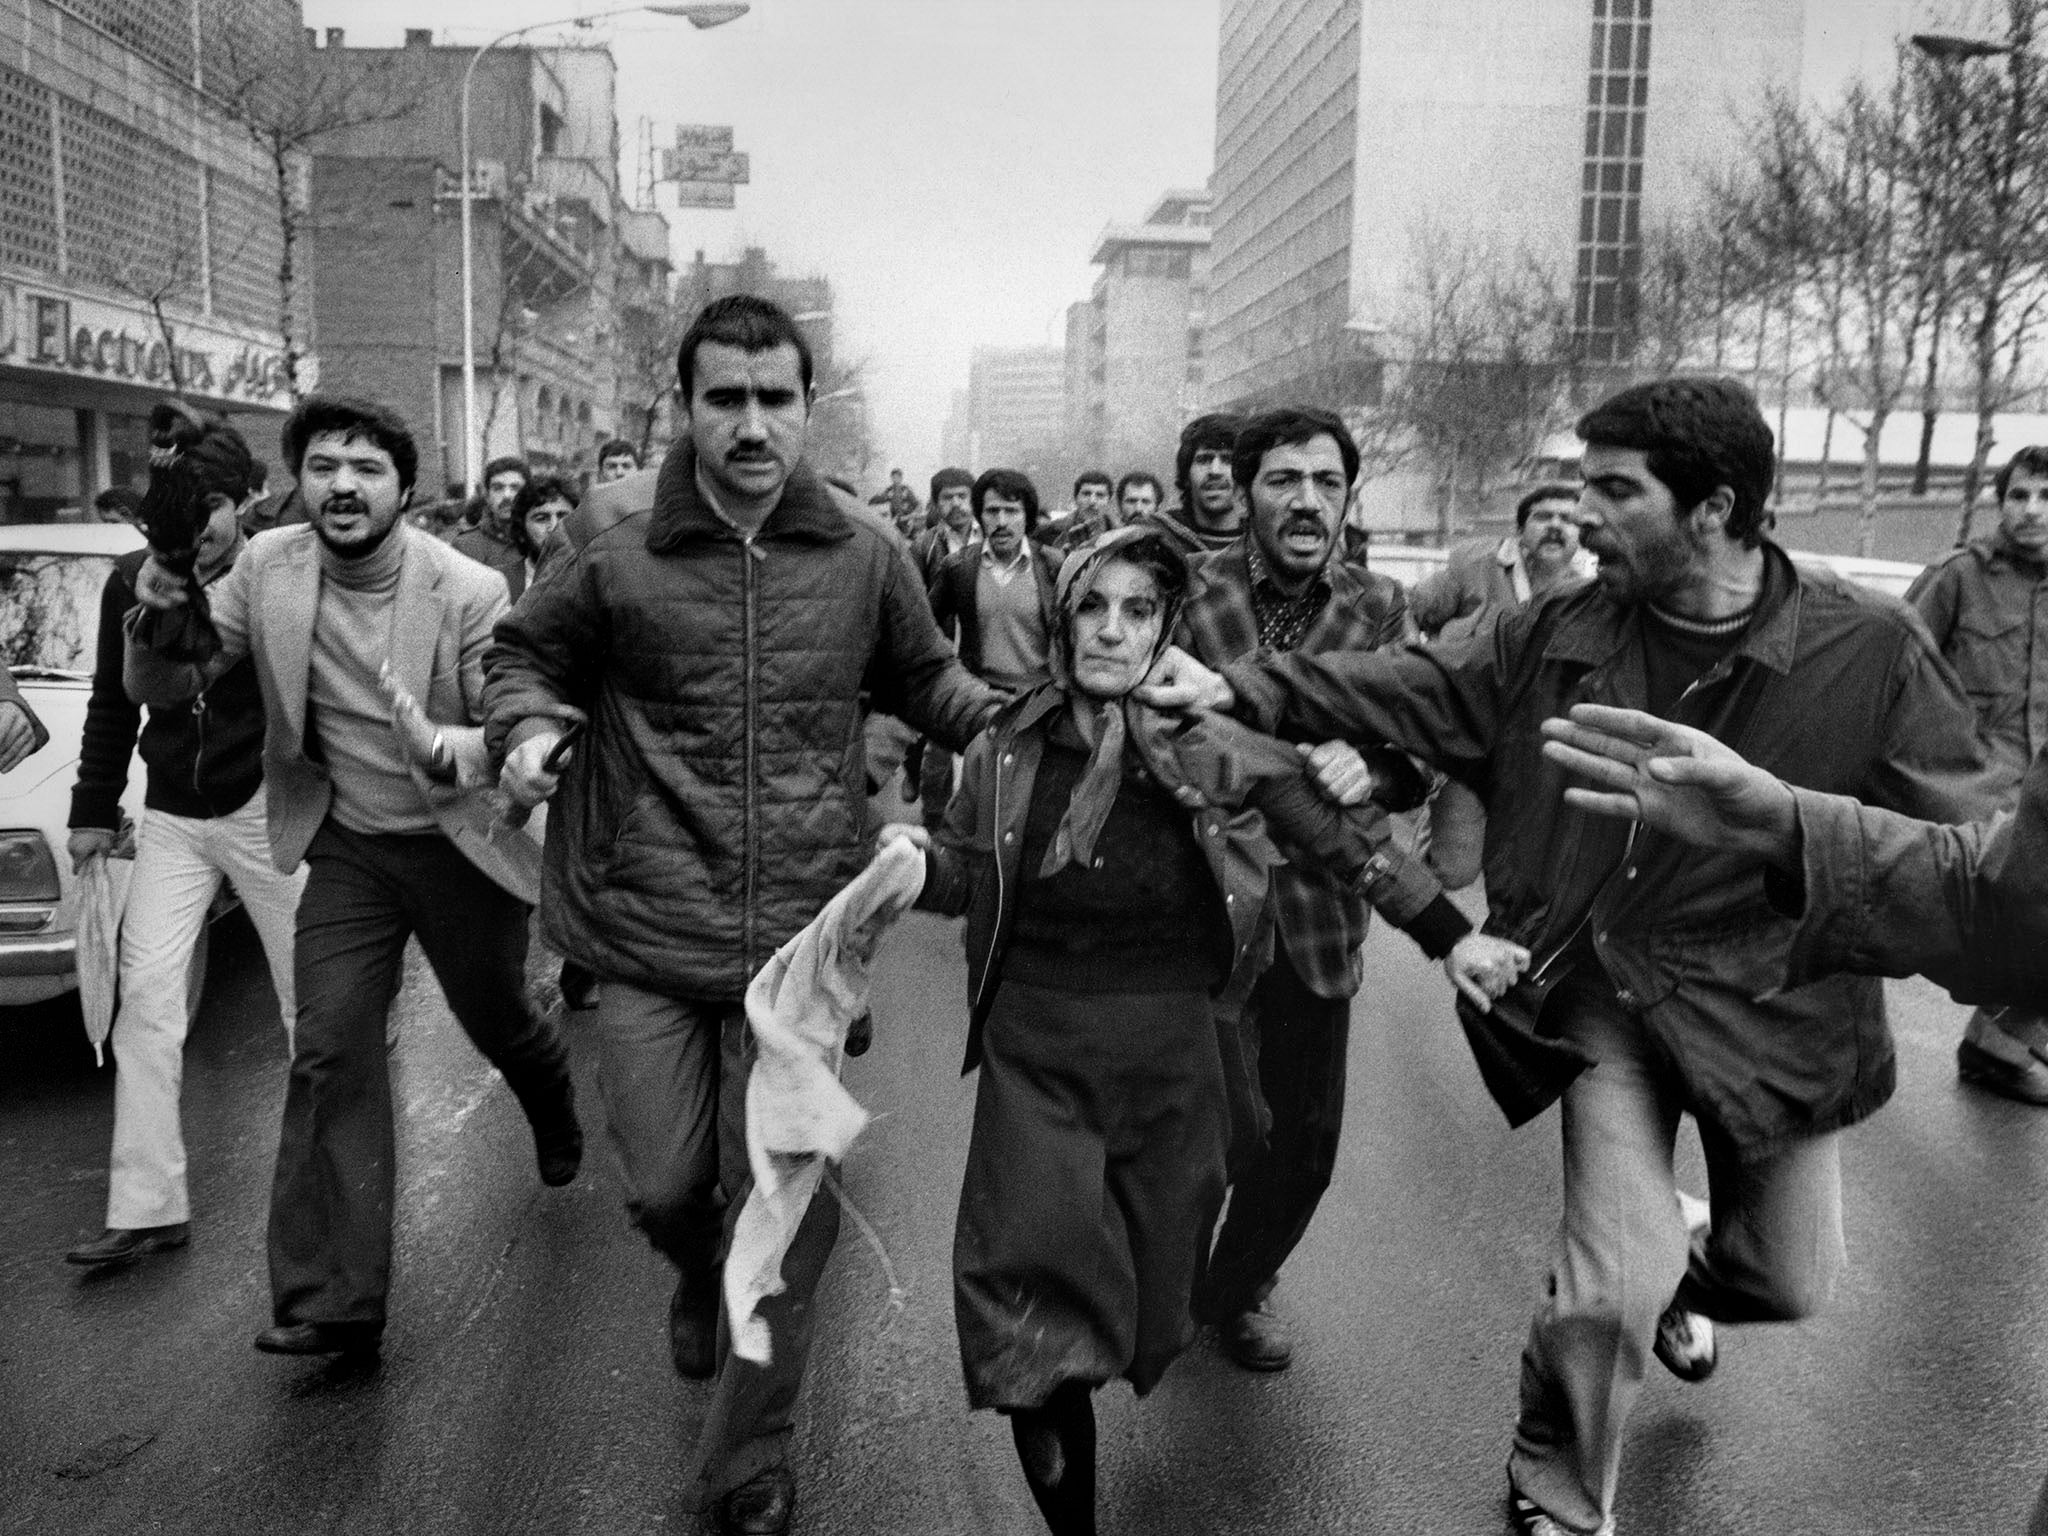 Abbas: Magnum photographer who chronicled the Iranian revolution